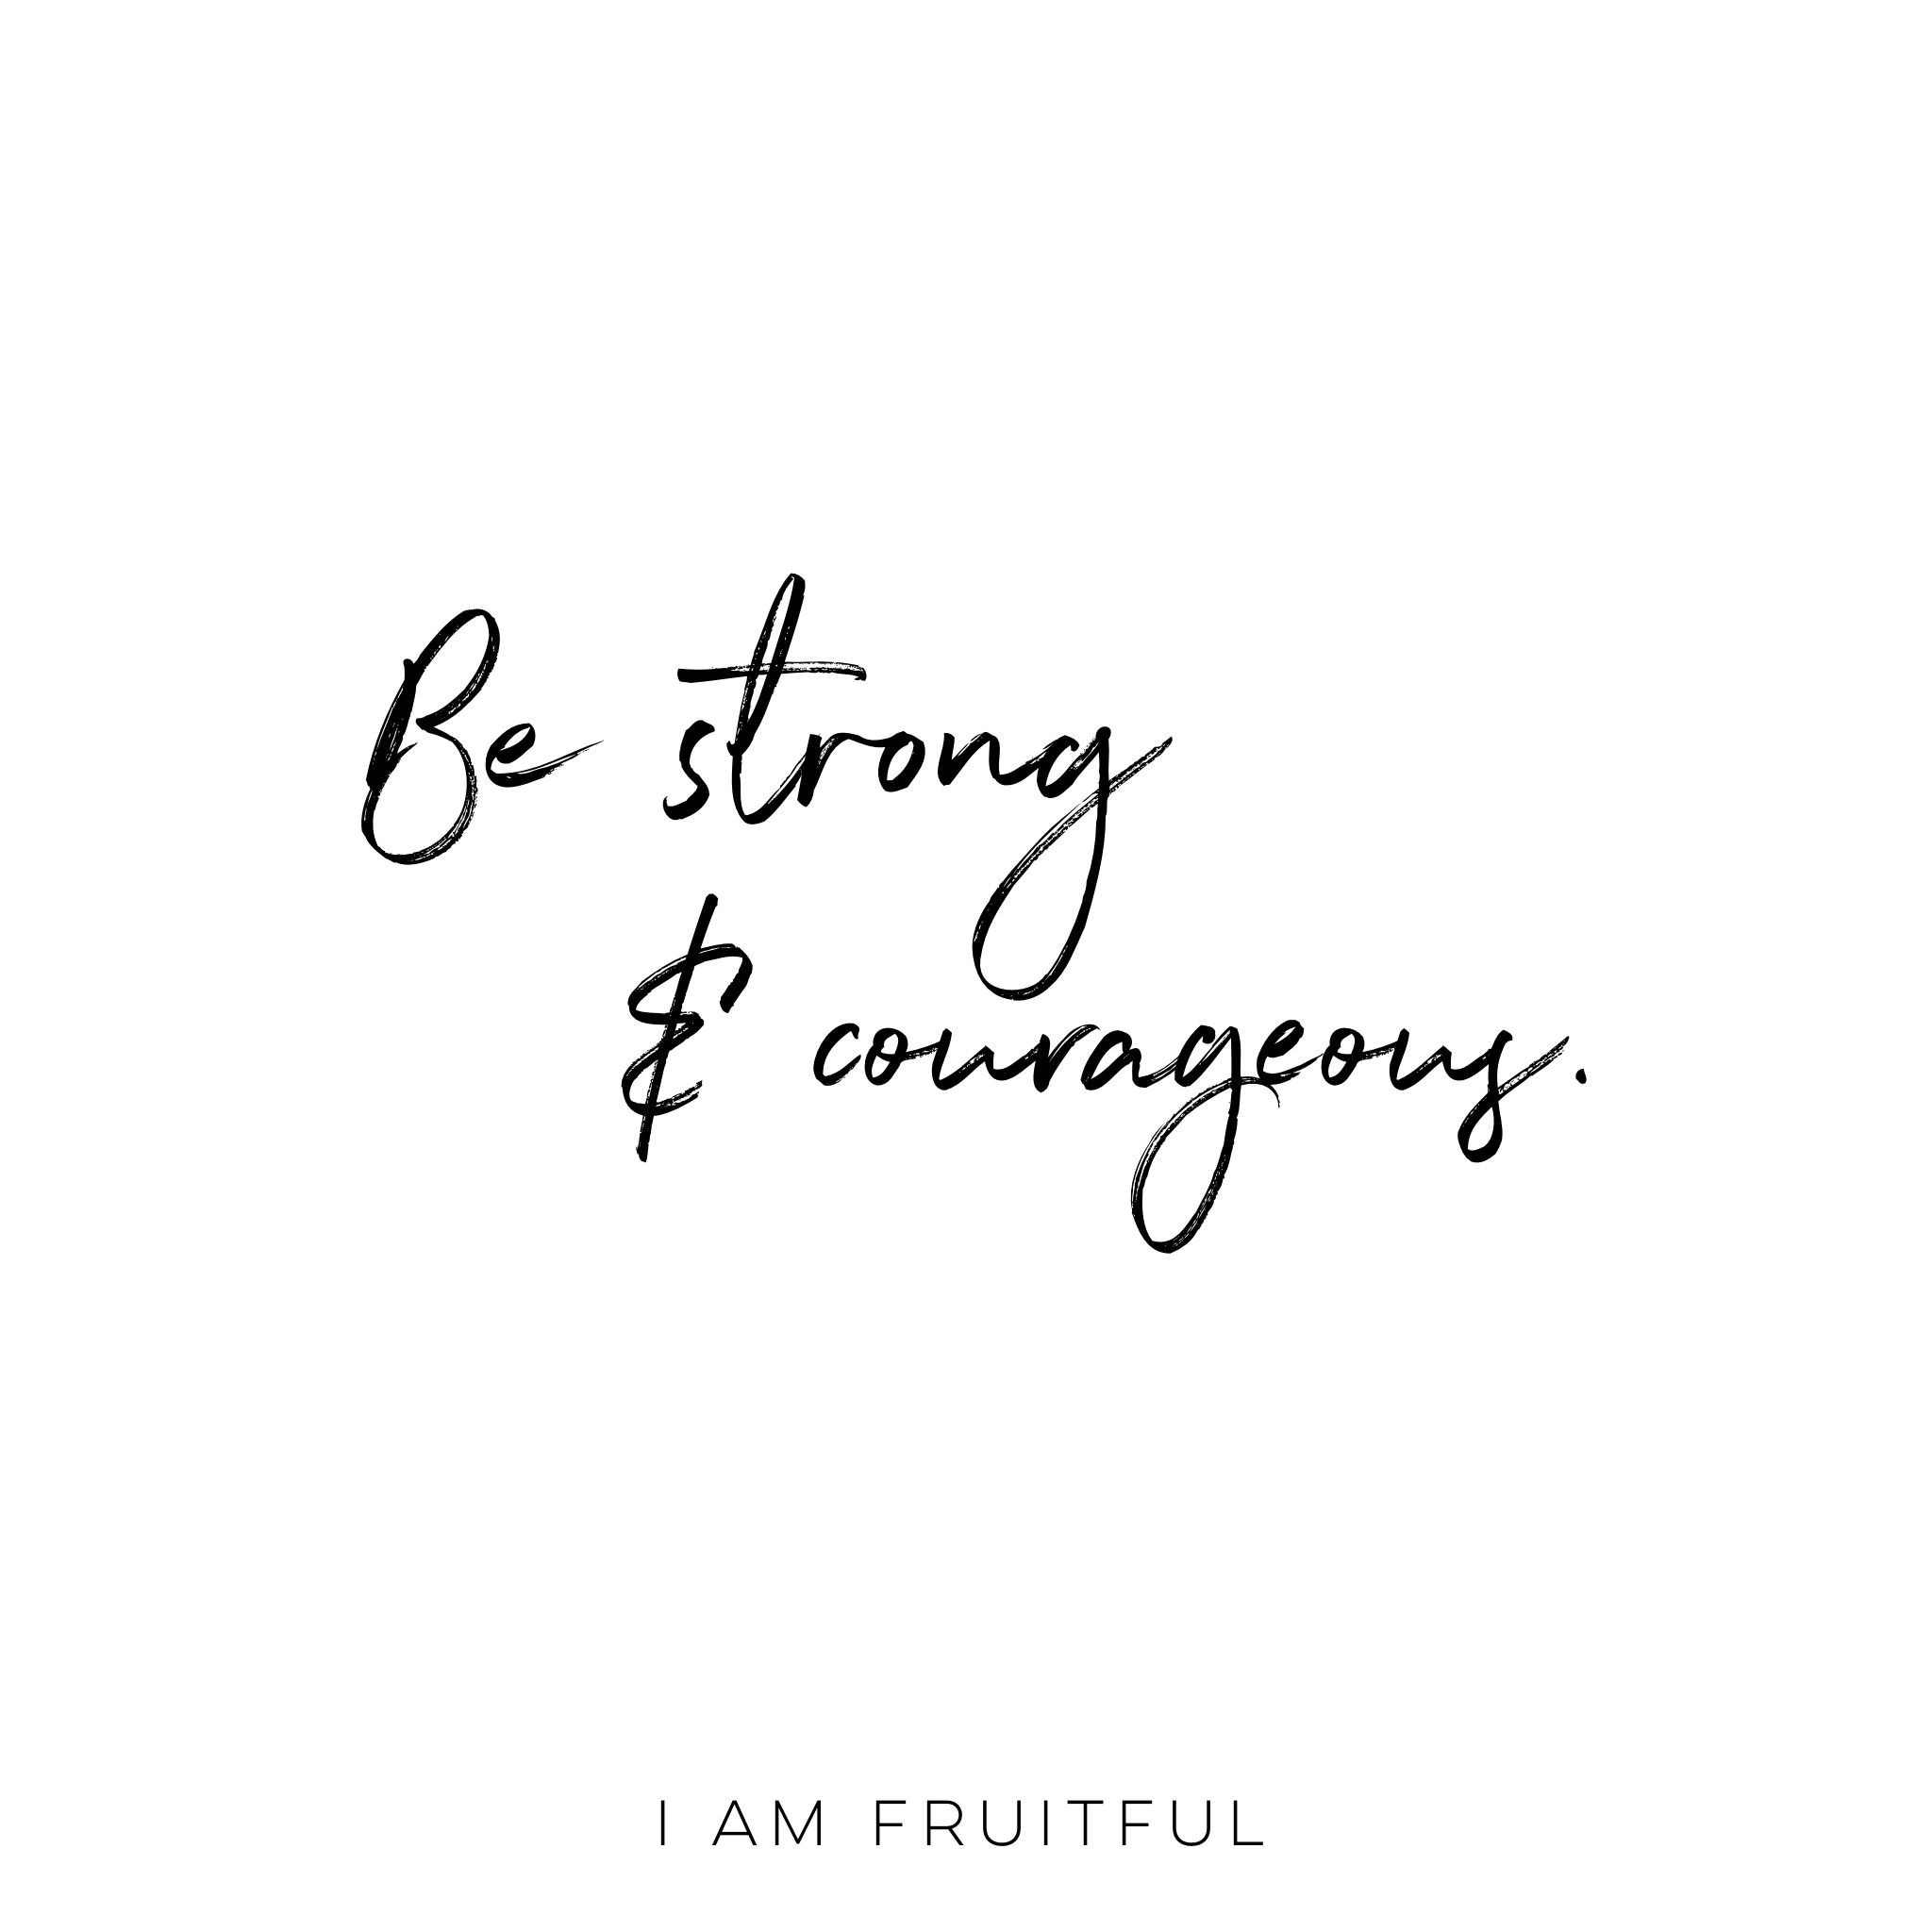 Strong & Courageous by Jill Fischetti